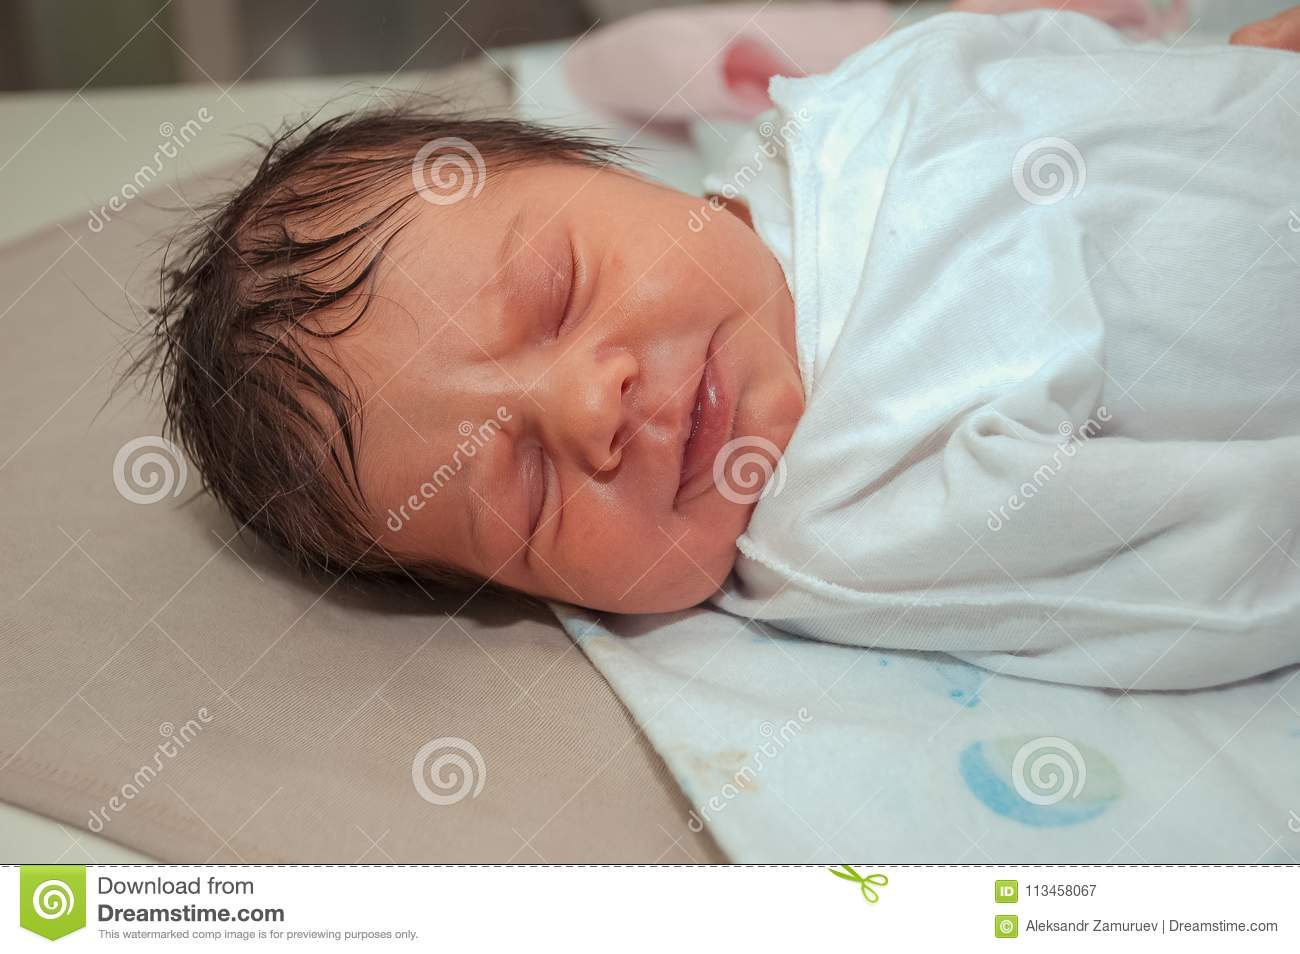 Cute healthy new born baby portrait